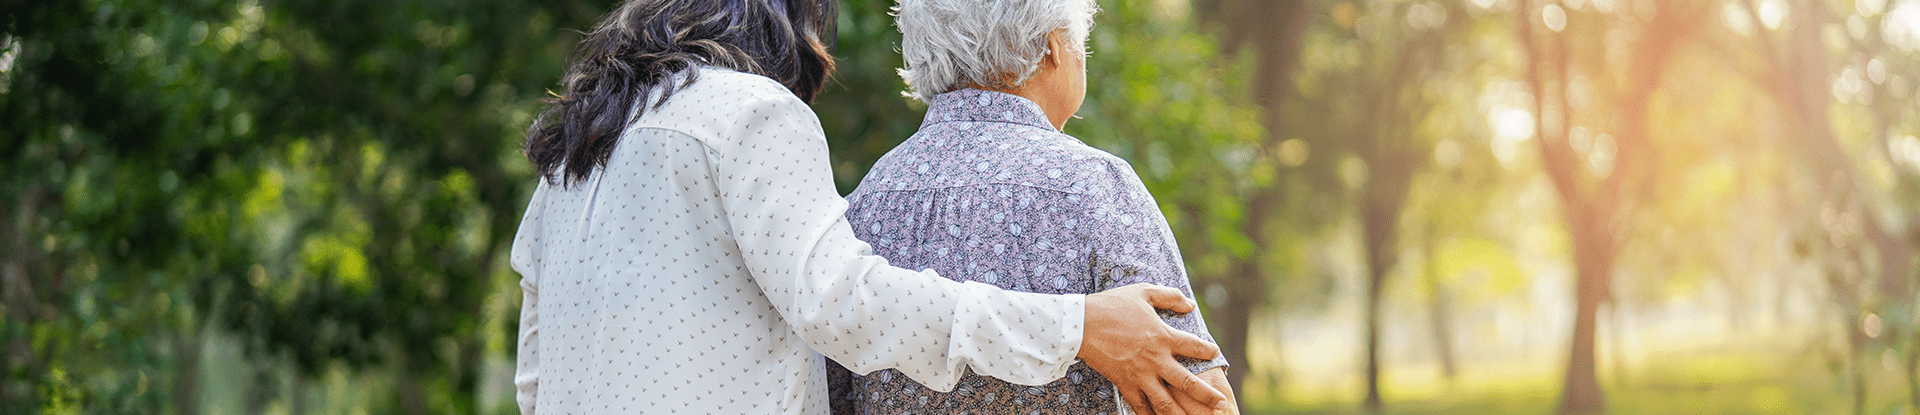 Aged care sector receives welcomes boost